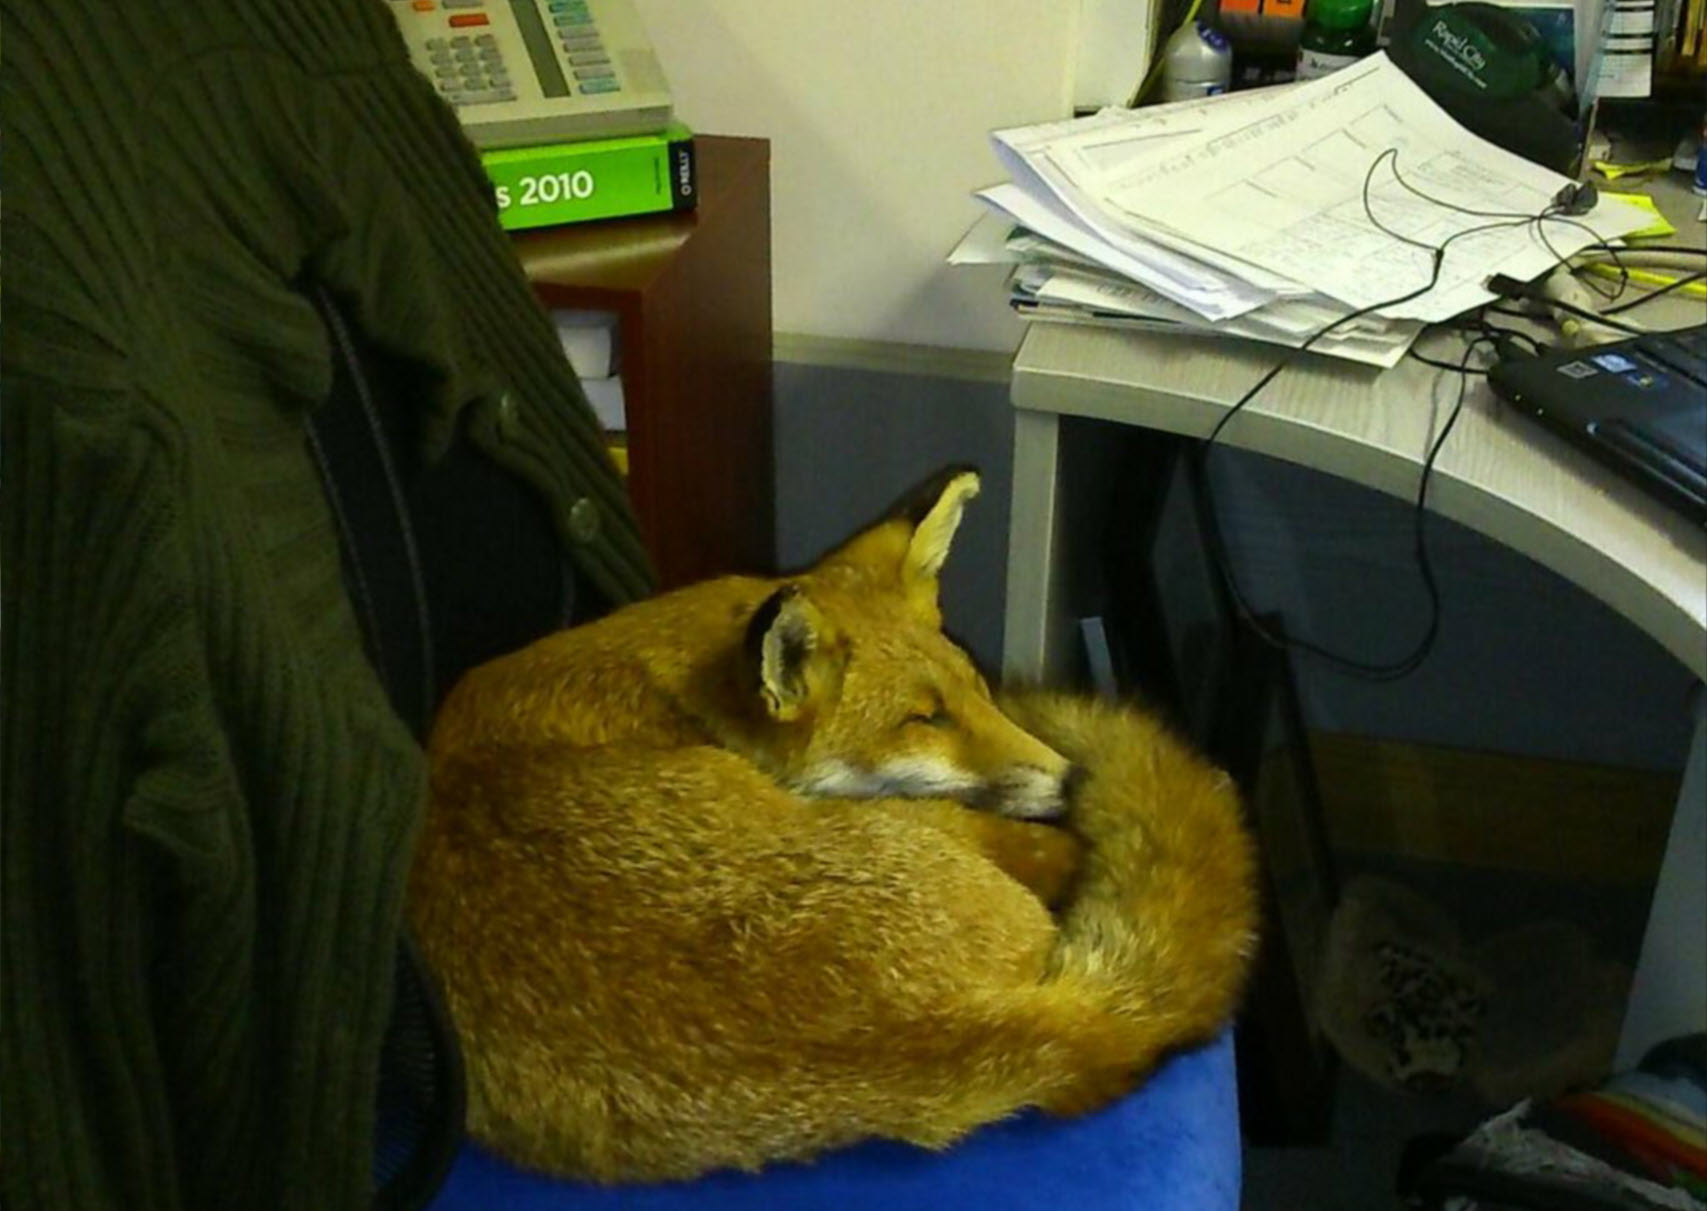 A fox snoozing in a chair in the GCER office. Don't worry, it's a stuffed fox!